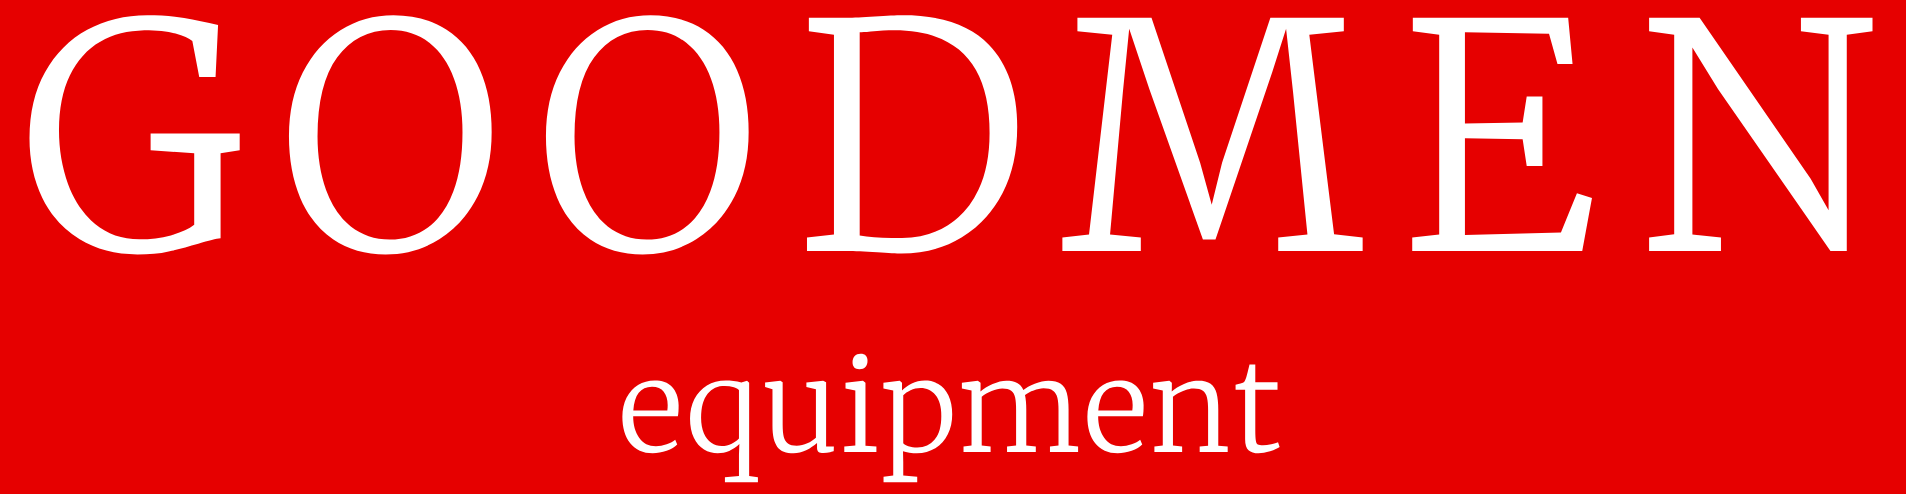 Goodmen equipment